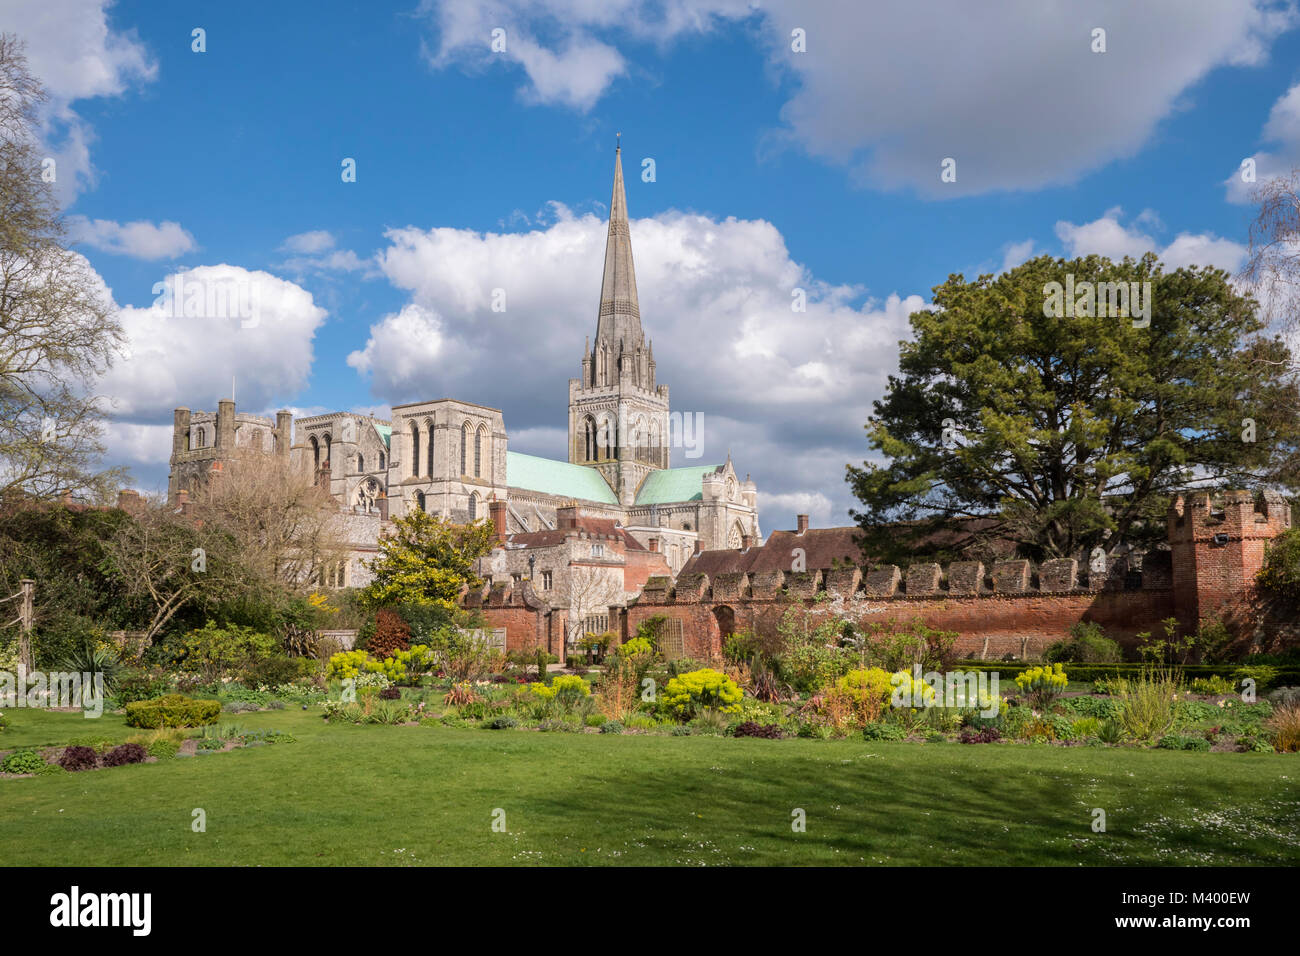 Chichester Cathedral Exterior Stock Photos & Chichester